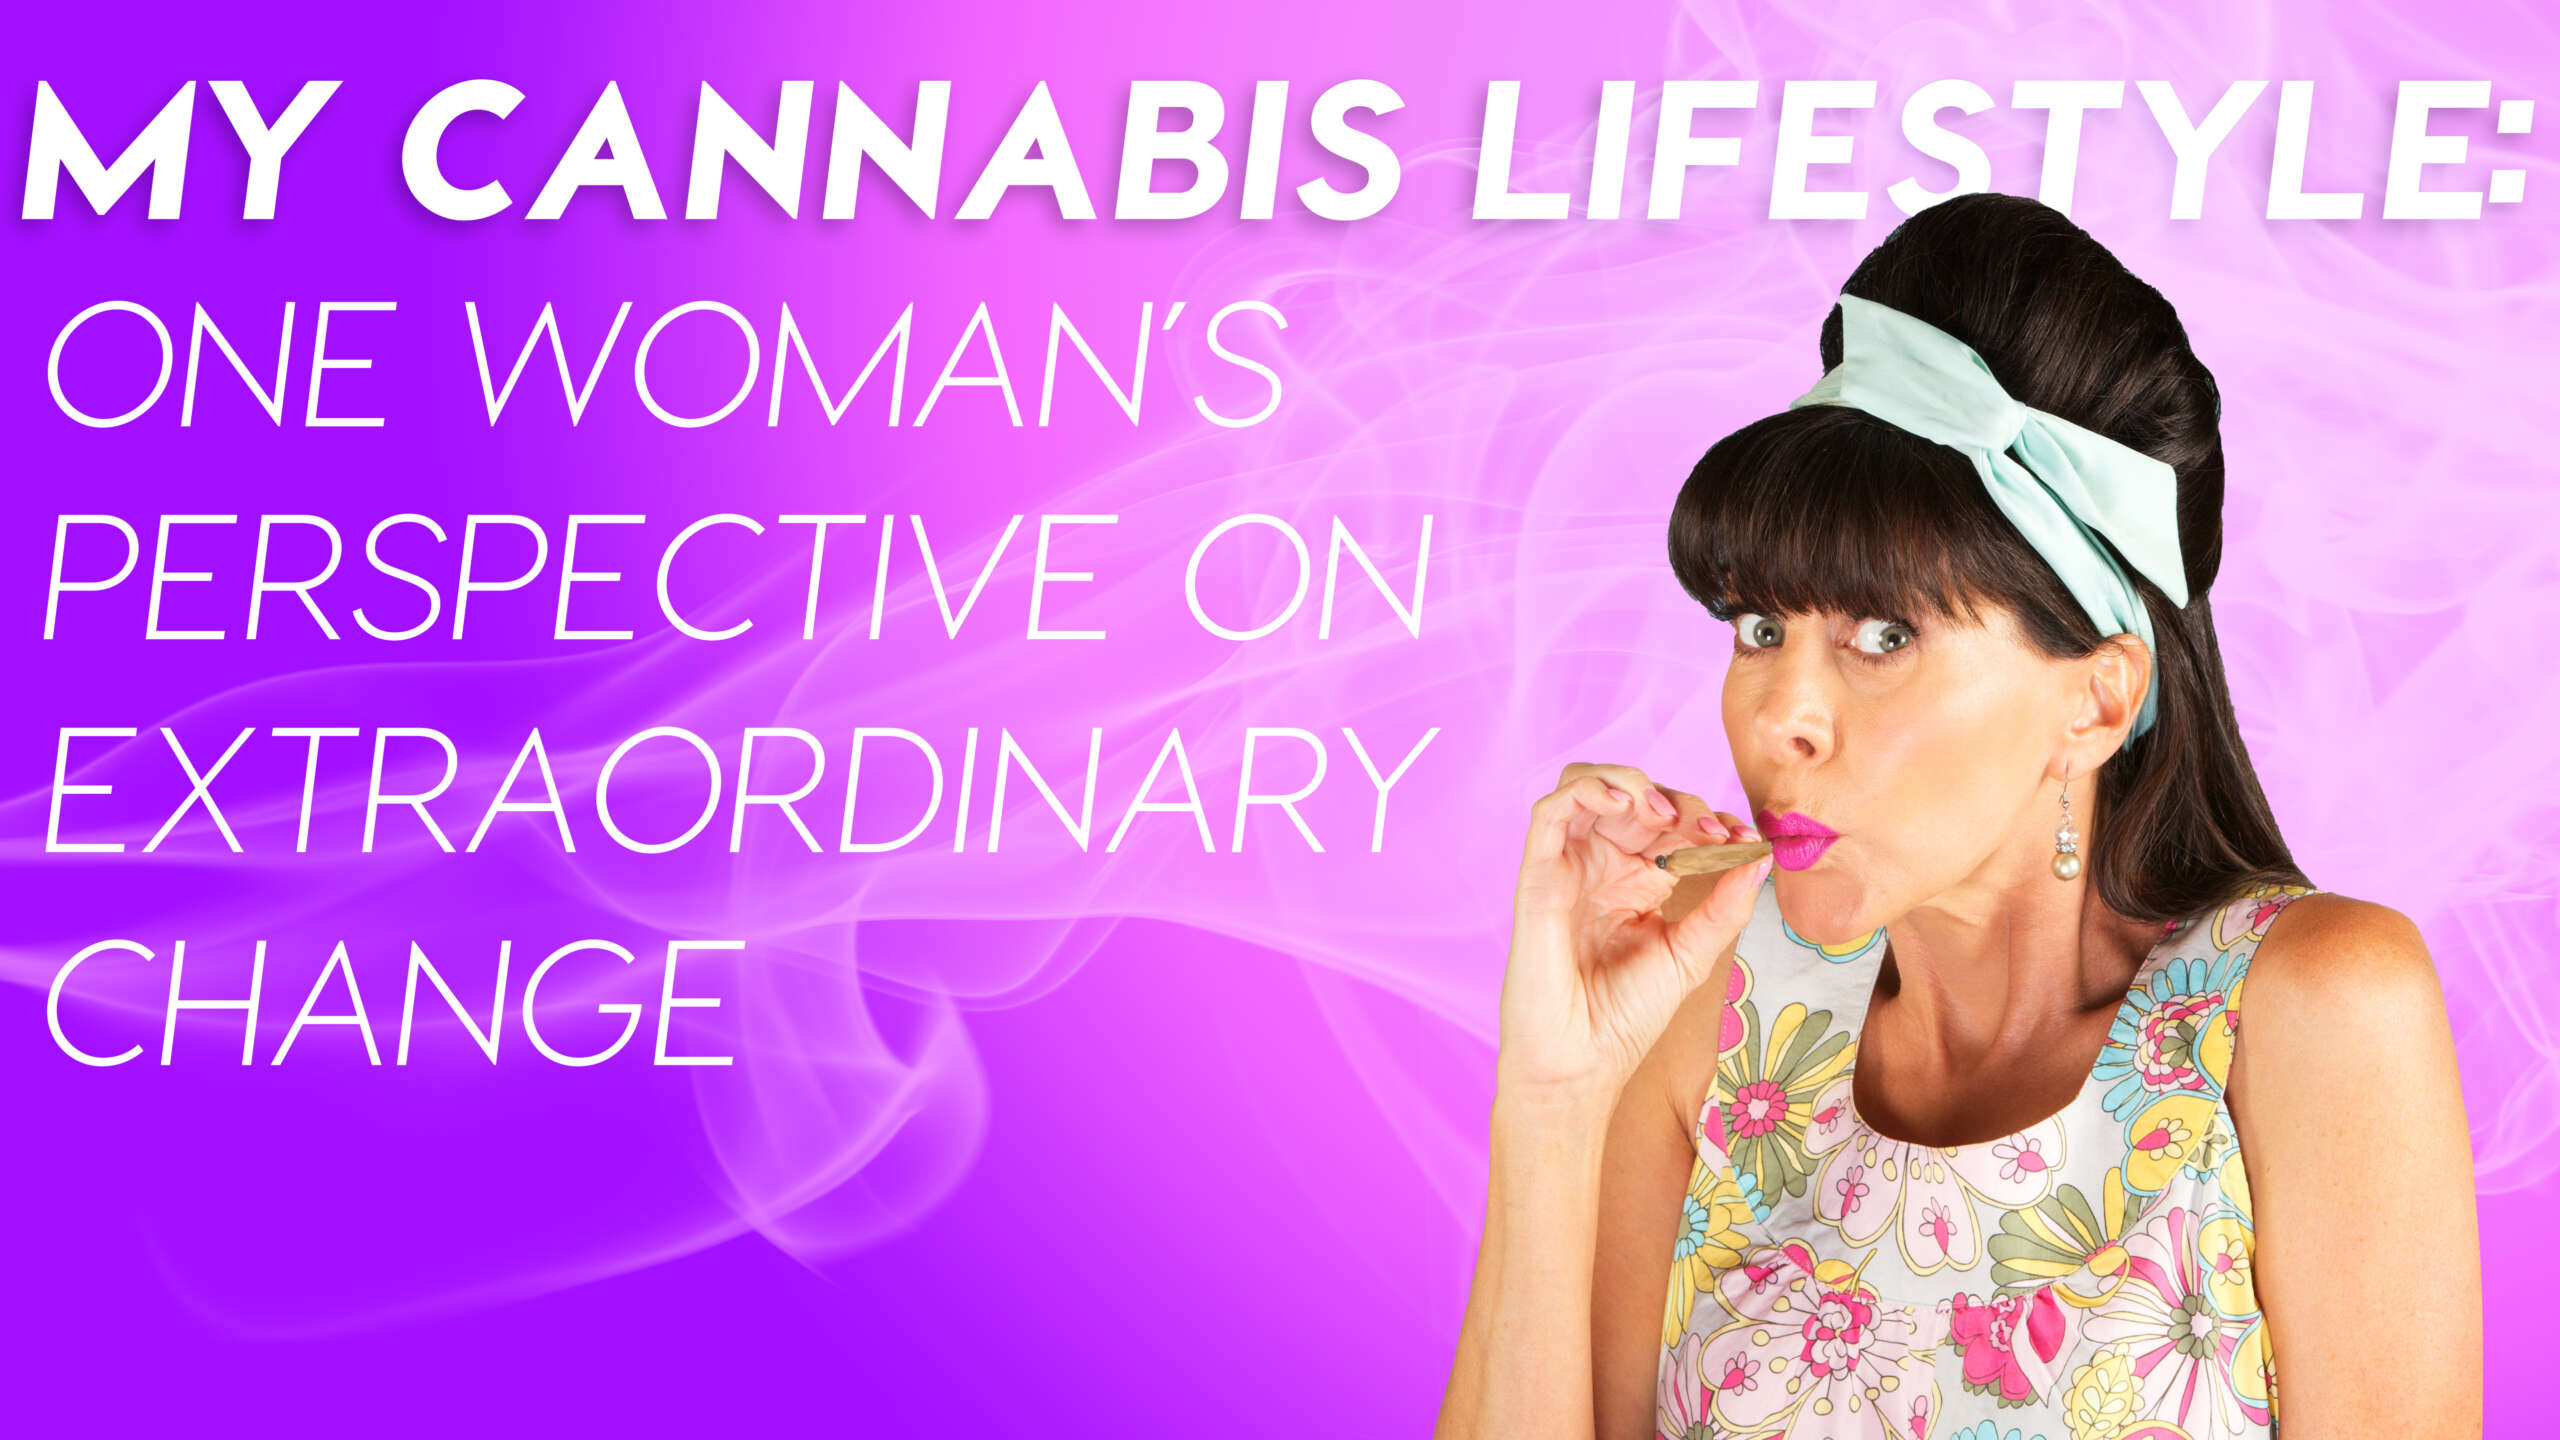 My Cannabis Lifestyle: One Woman's Perspective on Extraordinary Change